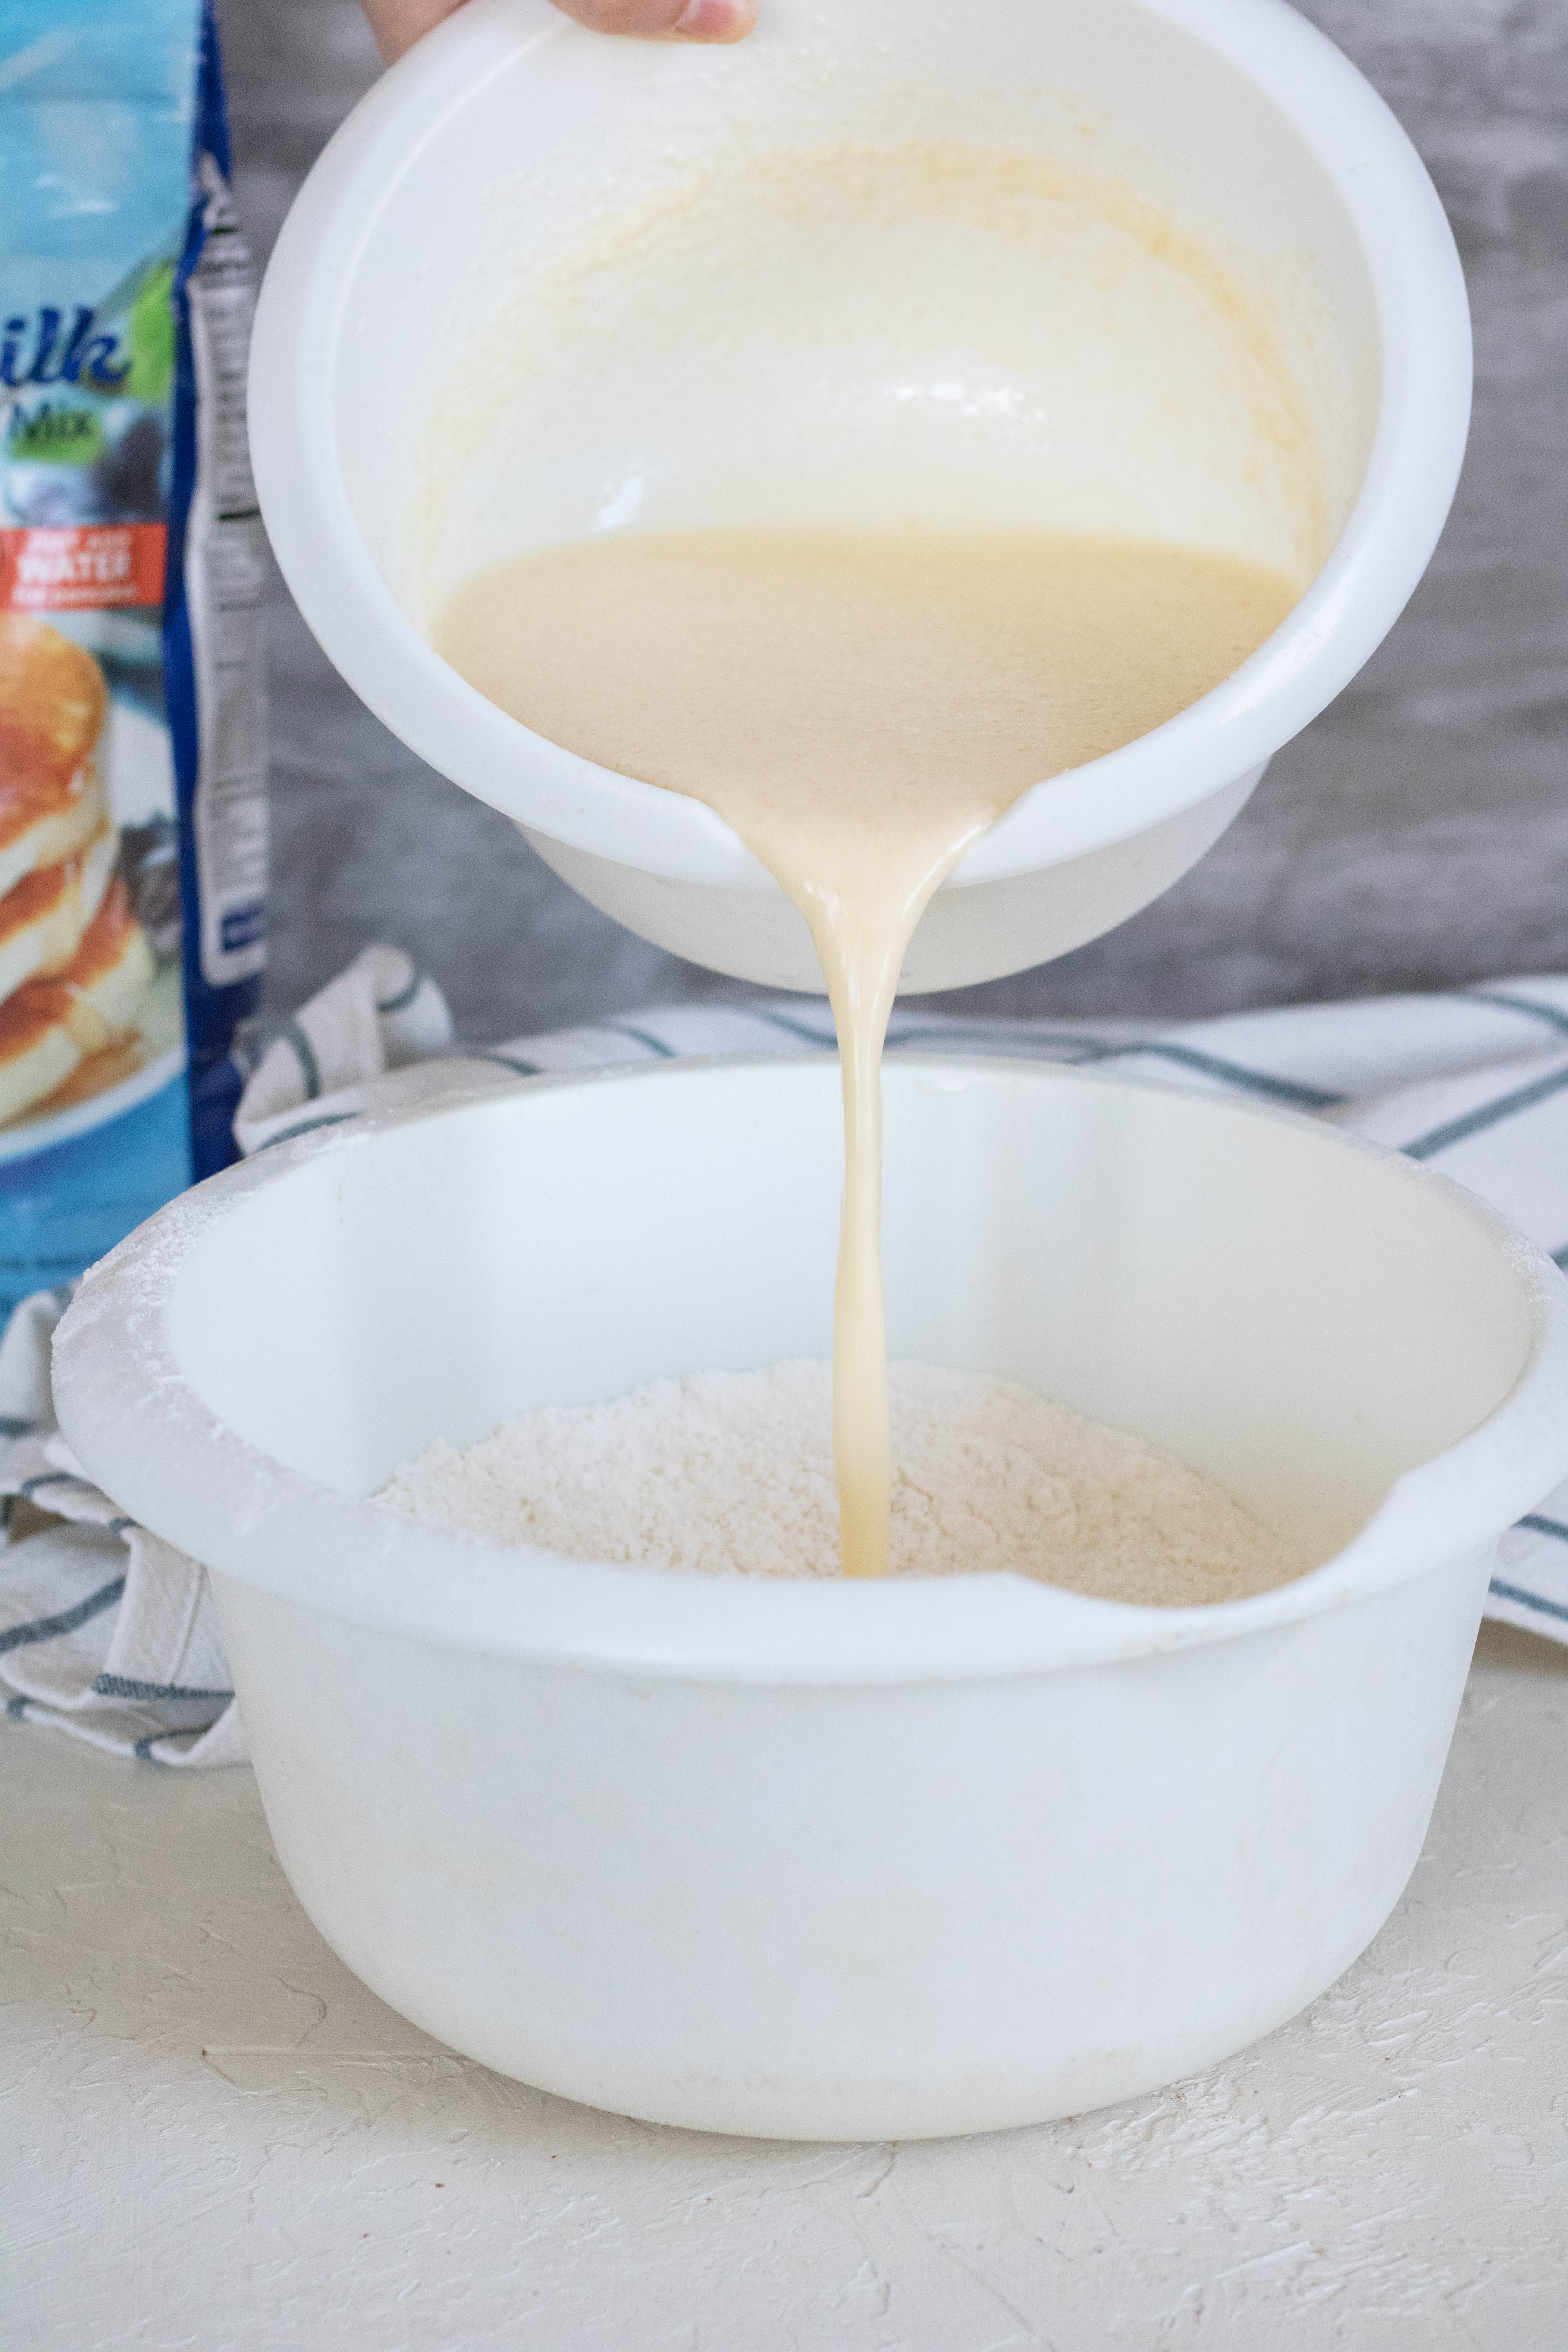 Add milk to boxed pancake mix to make them better